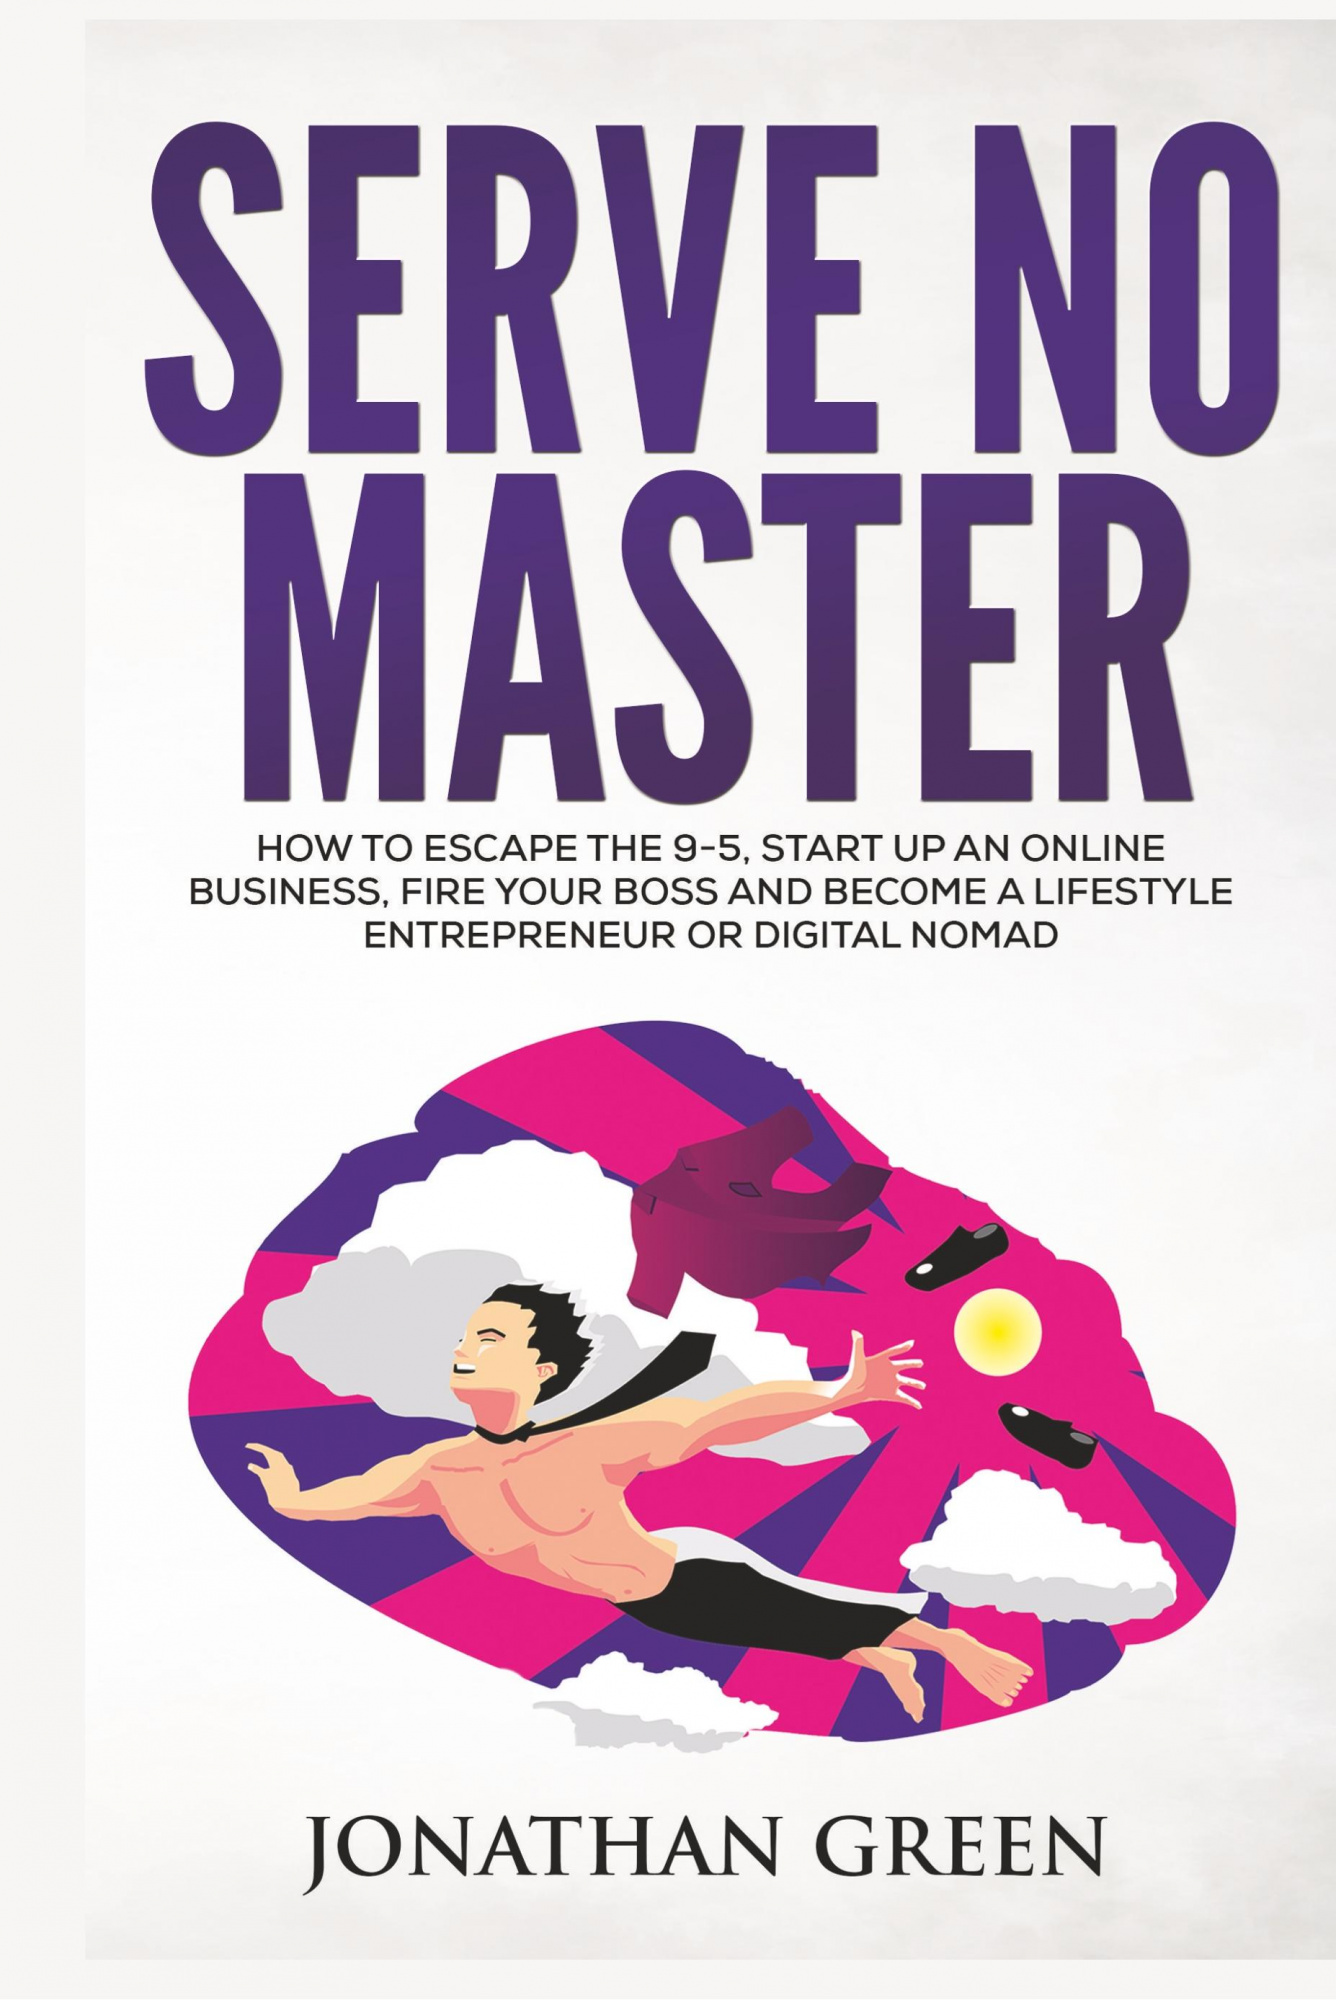 Serve No Master: How to Escape the 9-5, Start up an Online Business, Fire Your Boss and Become a Lifestyle Entrepreneur or Digital Nomad by Jonathan Green, ISBN: 9781947667006